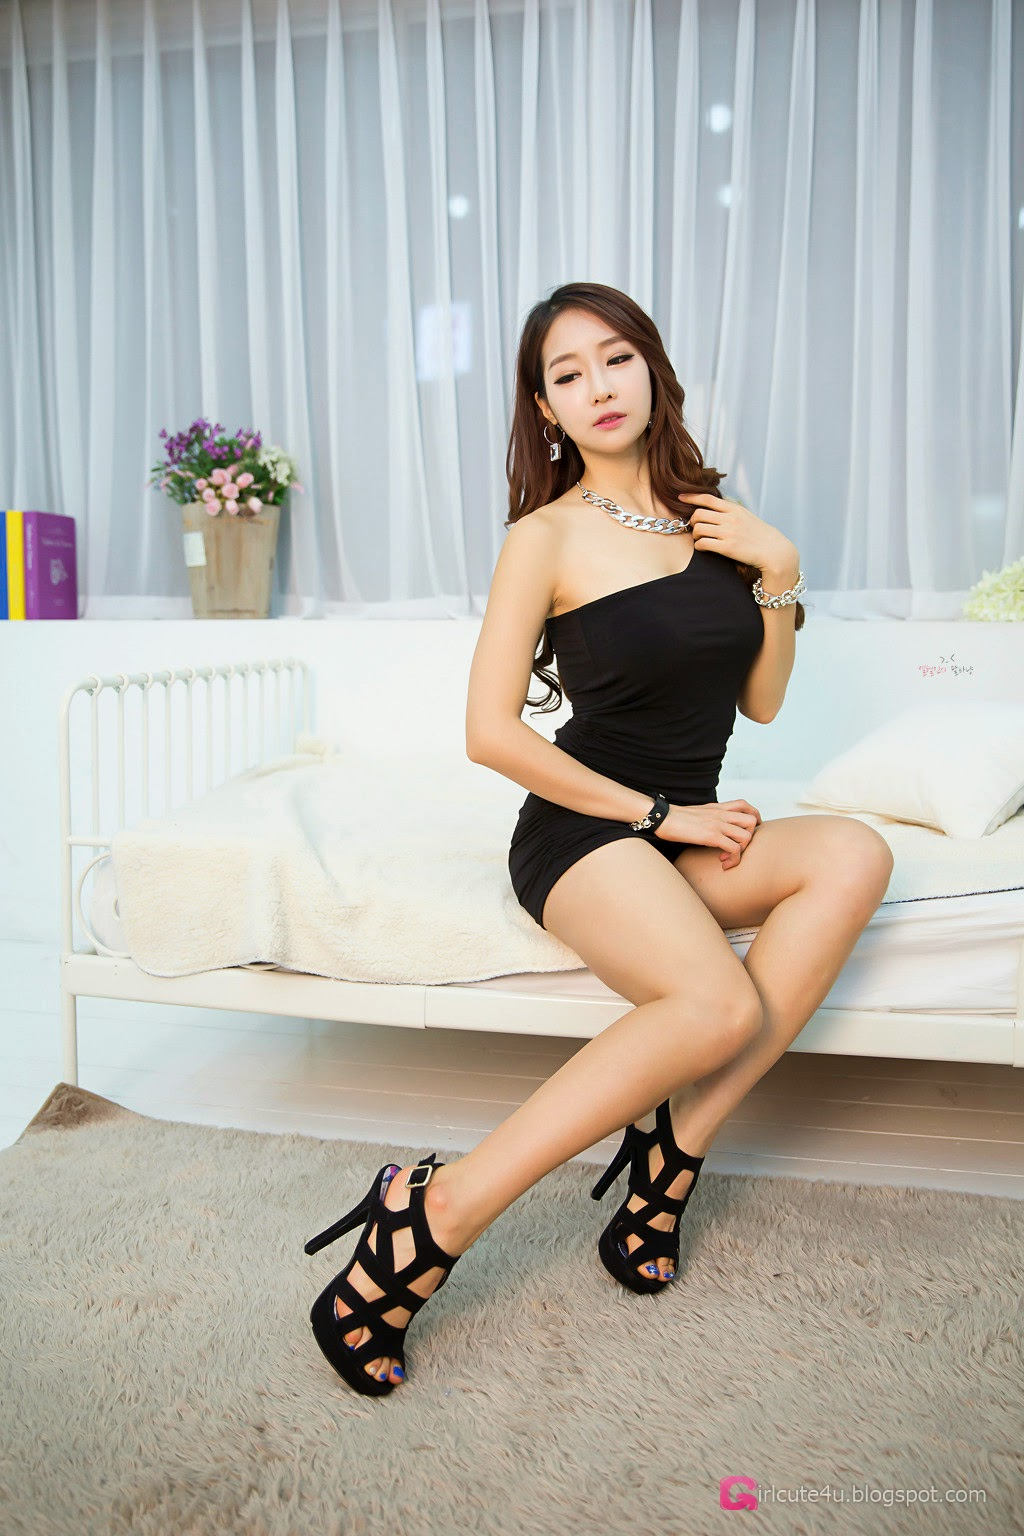 4 Lovely Eun Ji Ye In Studio Photo Shoot - very cute asian girl-girlcute4u.blogspot.com